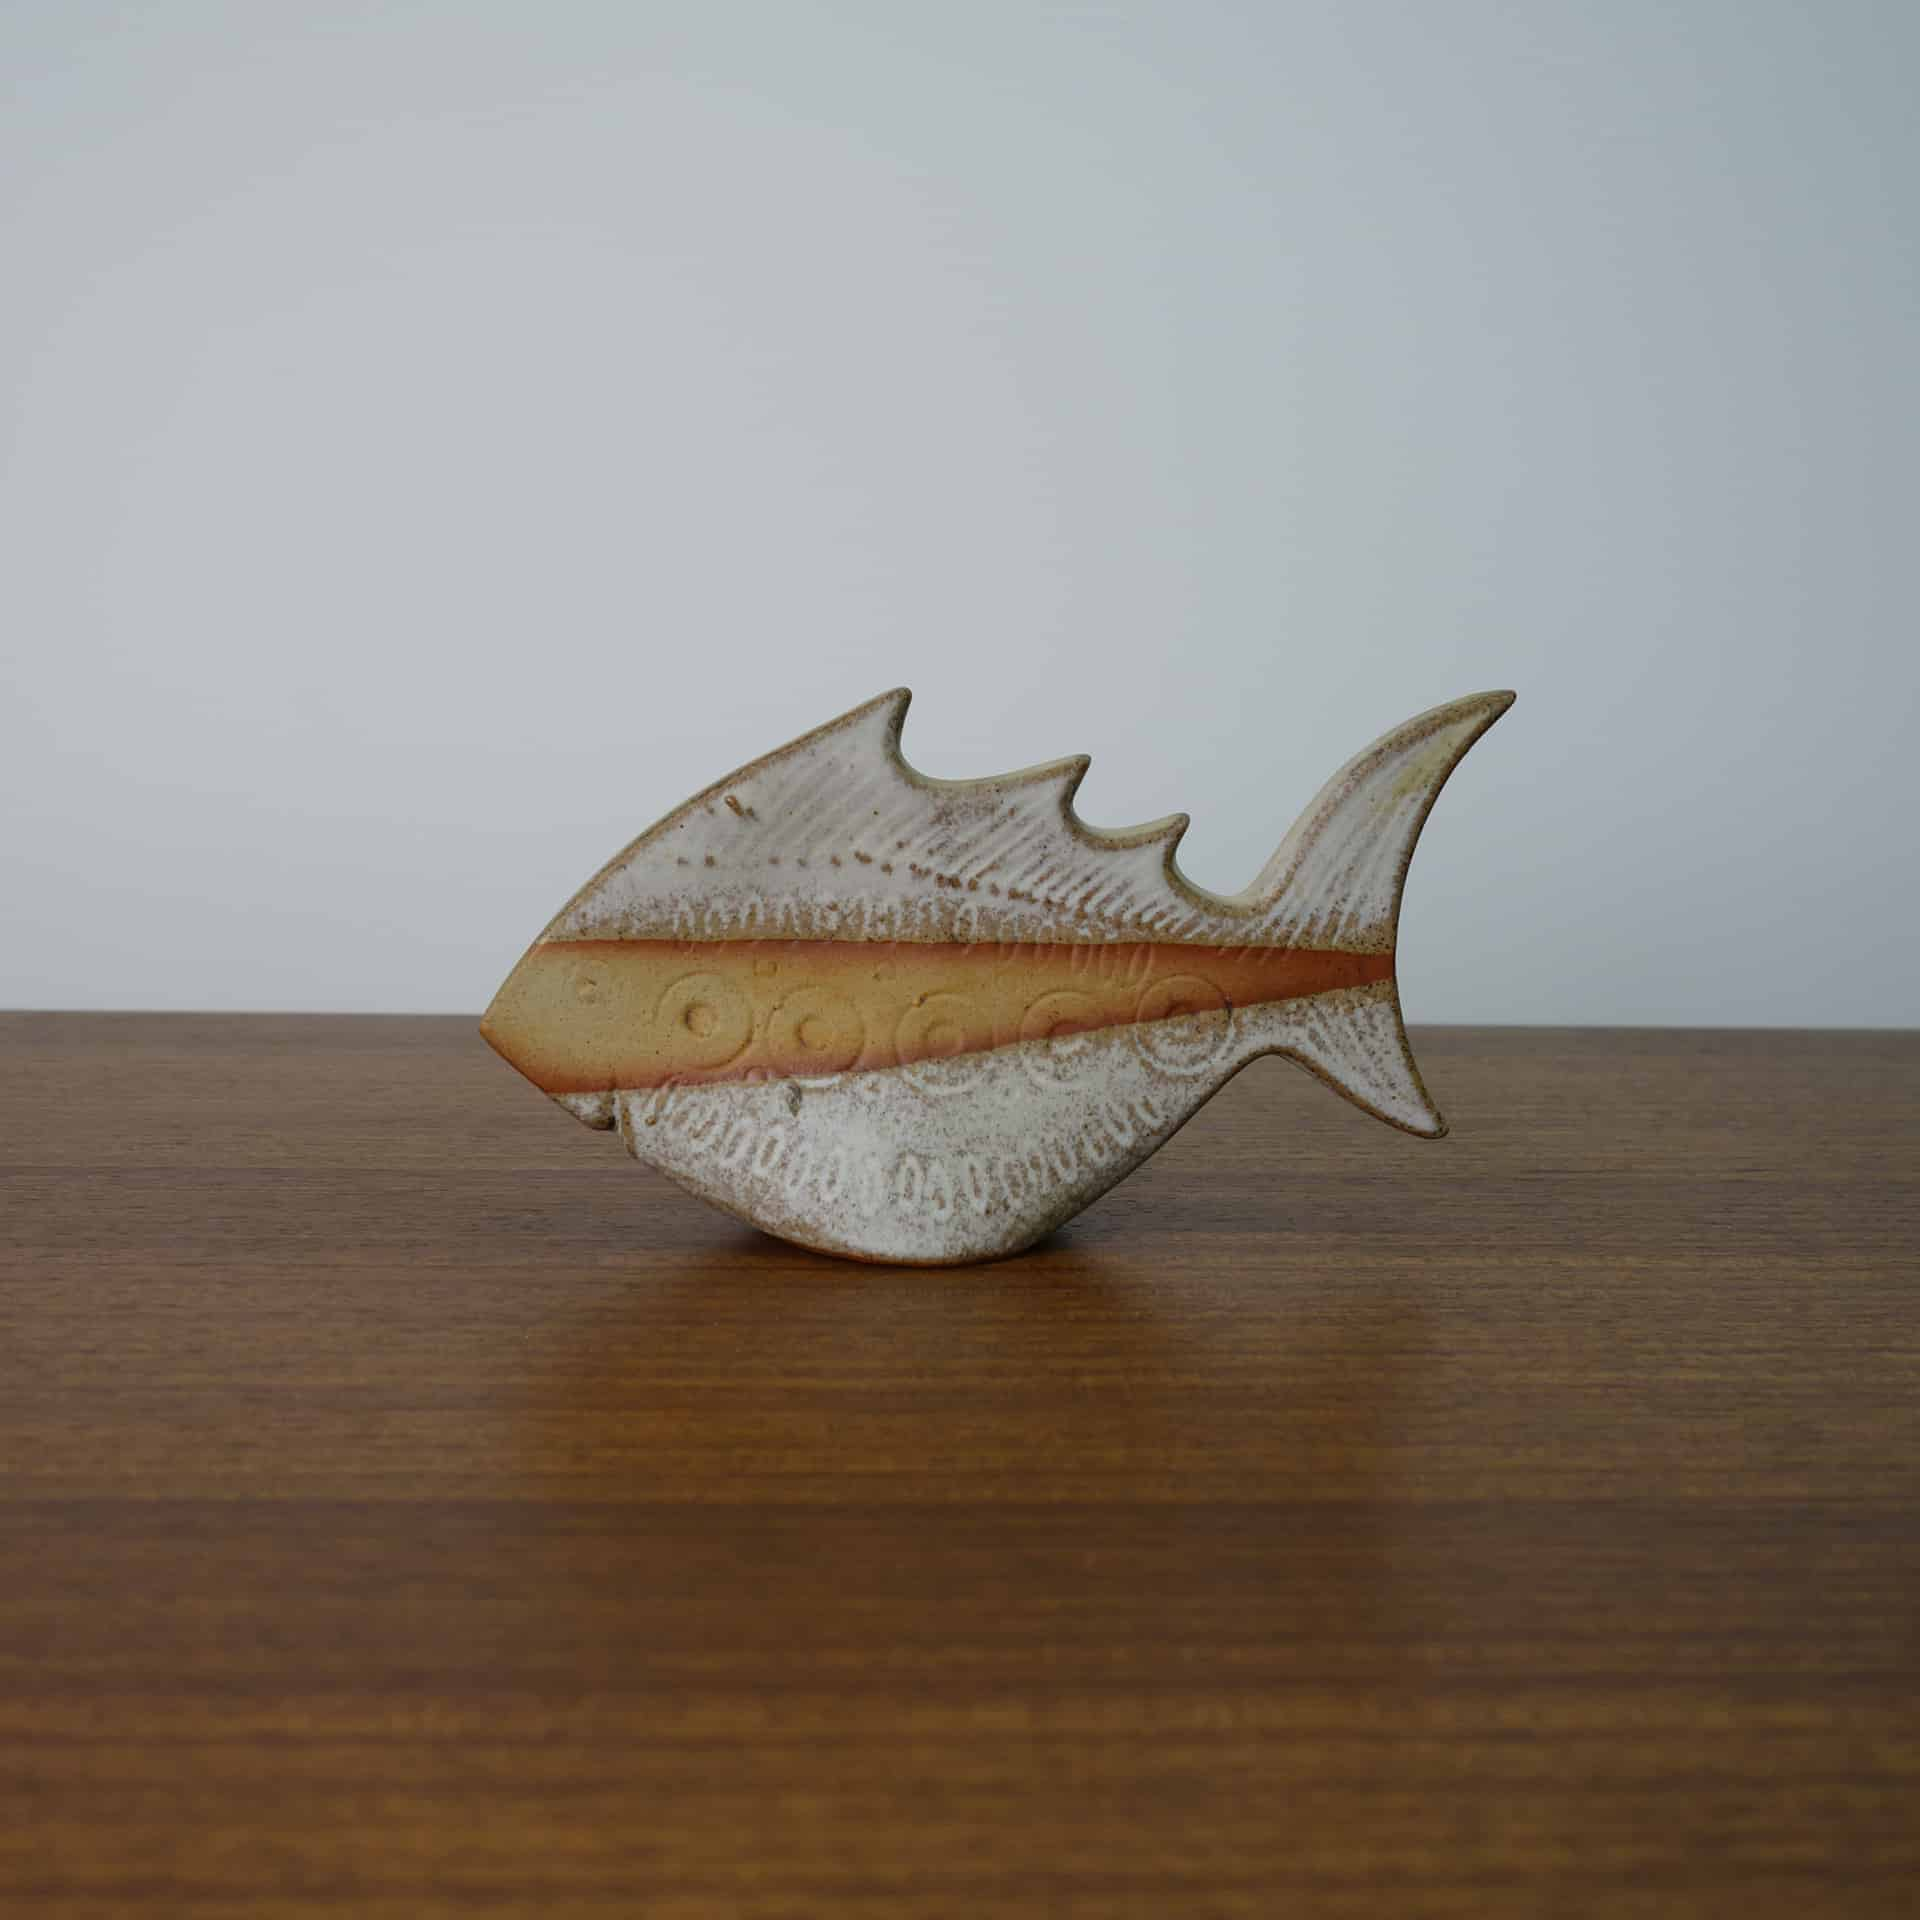 1970s Tremar style pottery fish